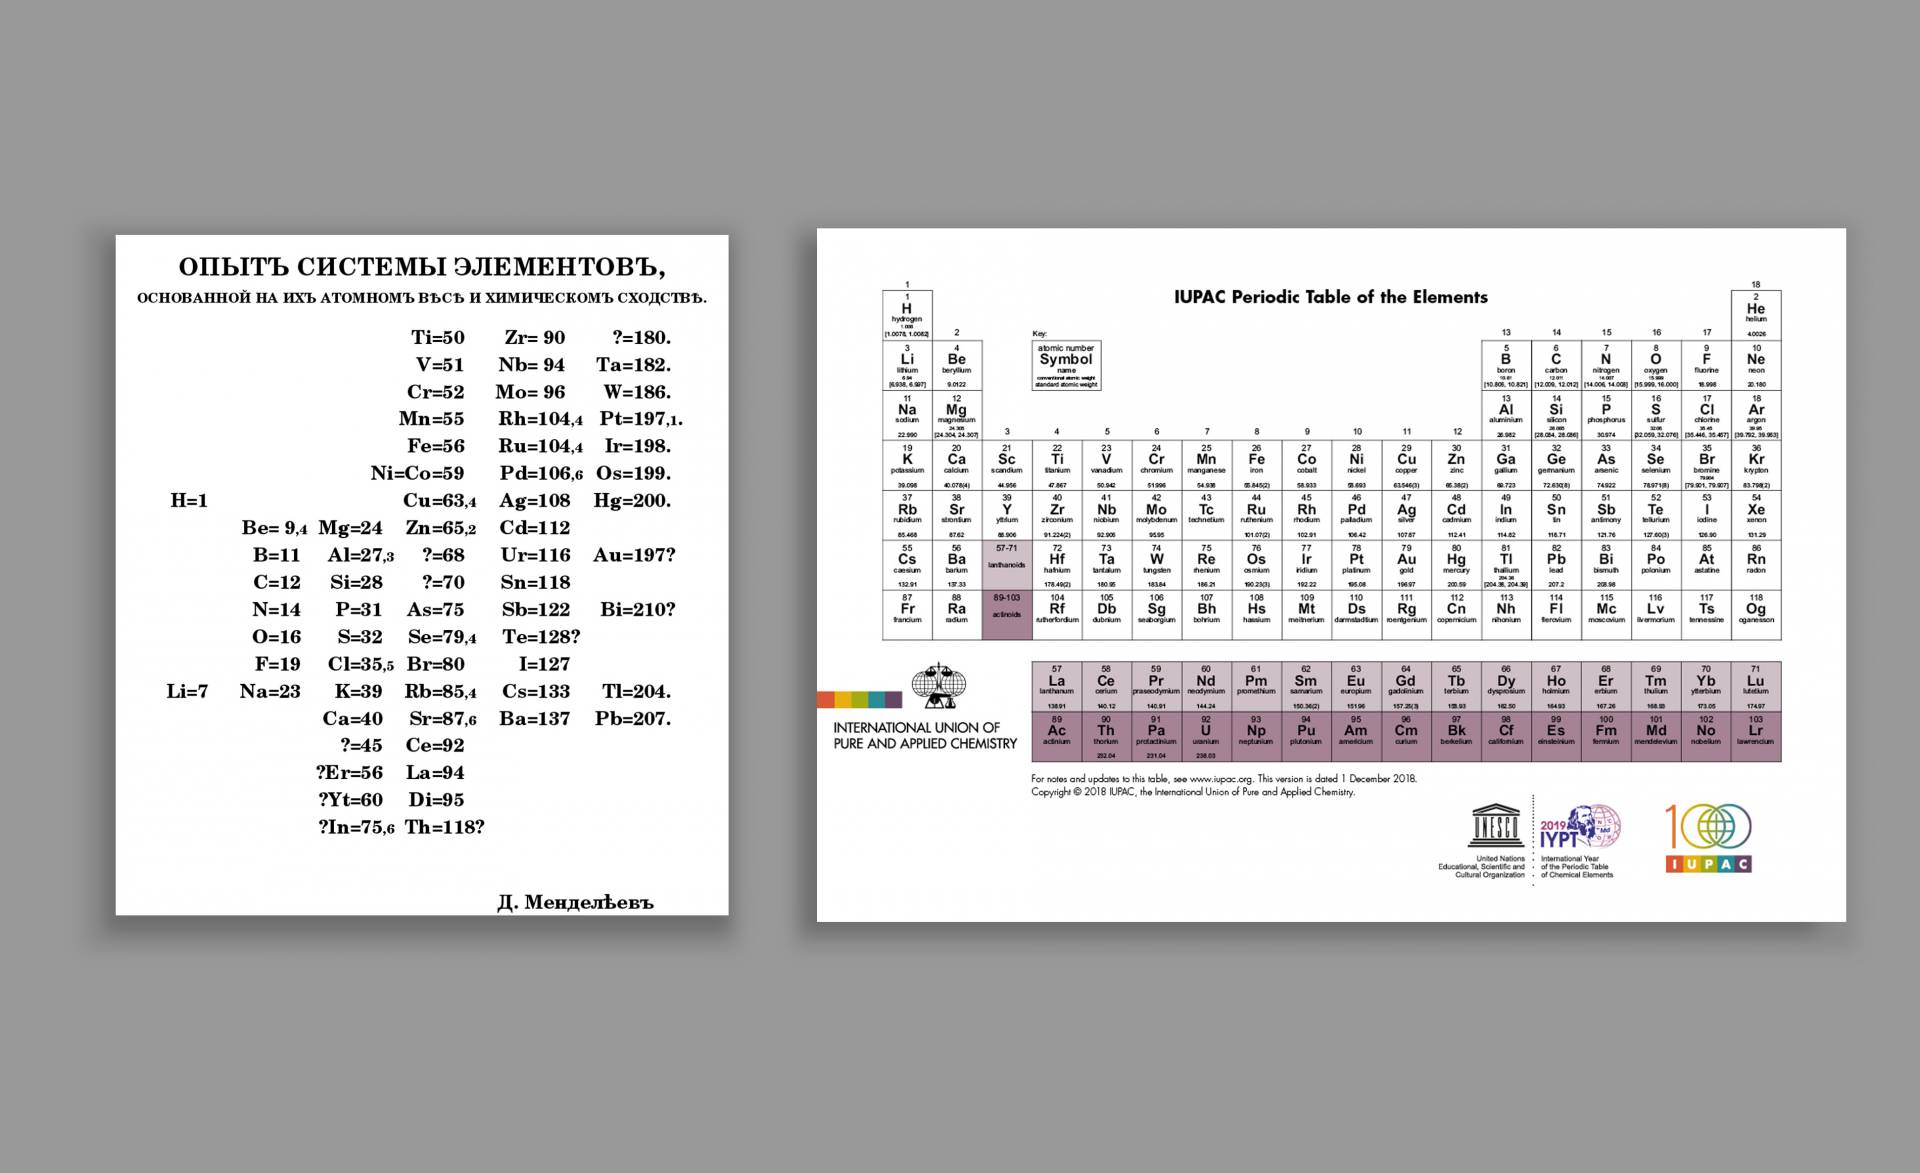 Comparison with Mendeleev's table of elements beside the current periodic table of elements